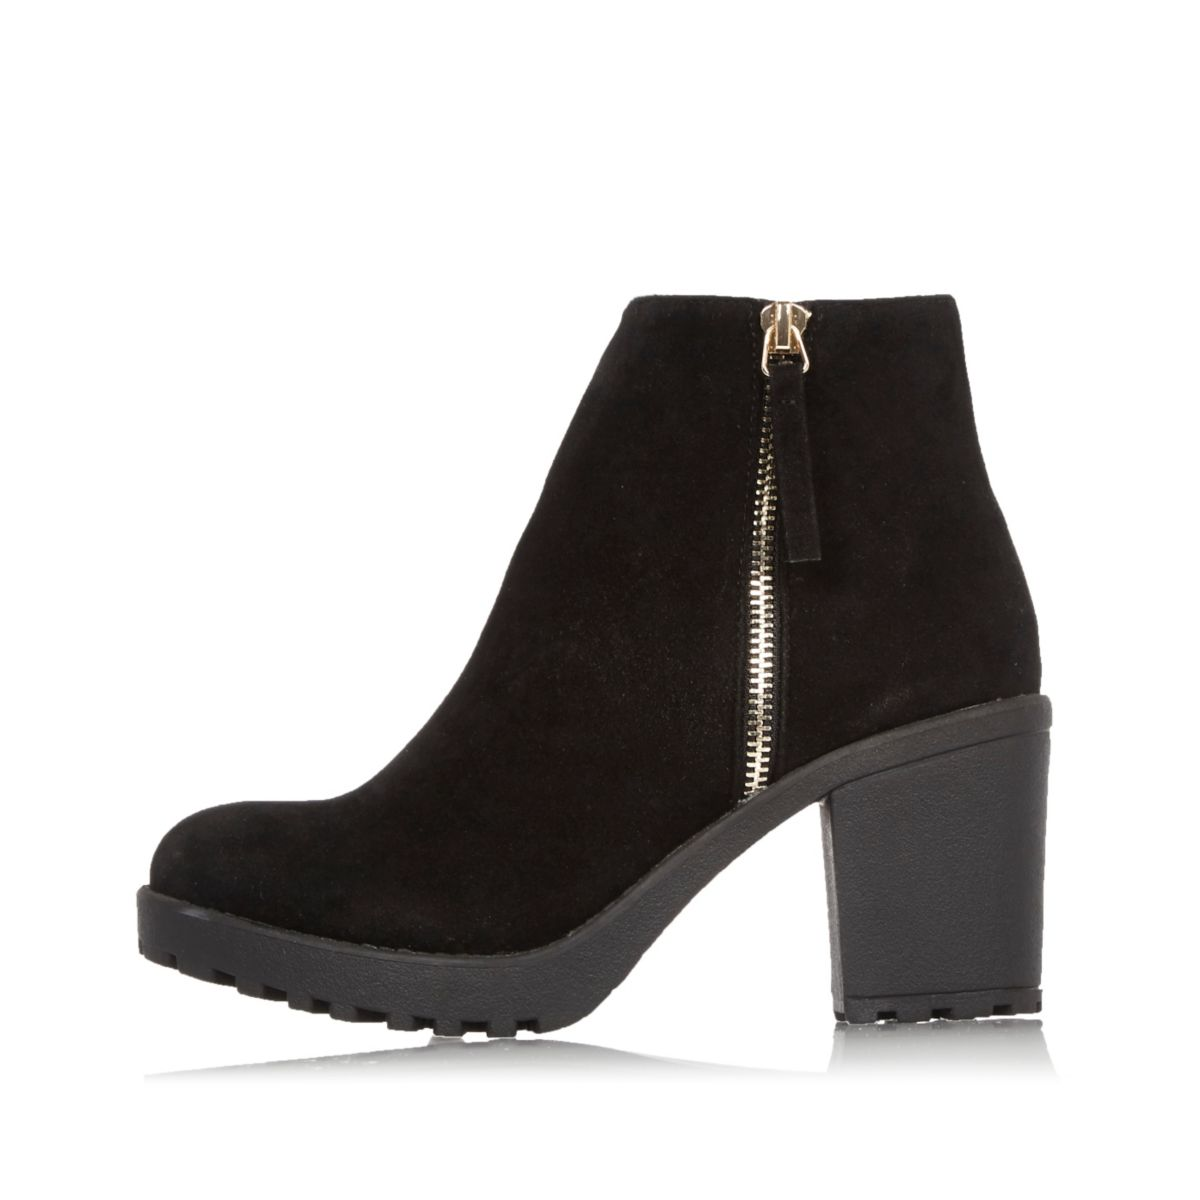 Shop comfortable, versatile chunky-heel boots at grounwhijwgg.cf Free shipping and returns from the best brands including Sam Edelman, Frye, Vince Camuto and more. Totally free shipping & returns.